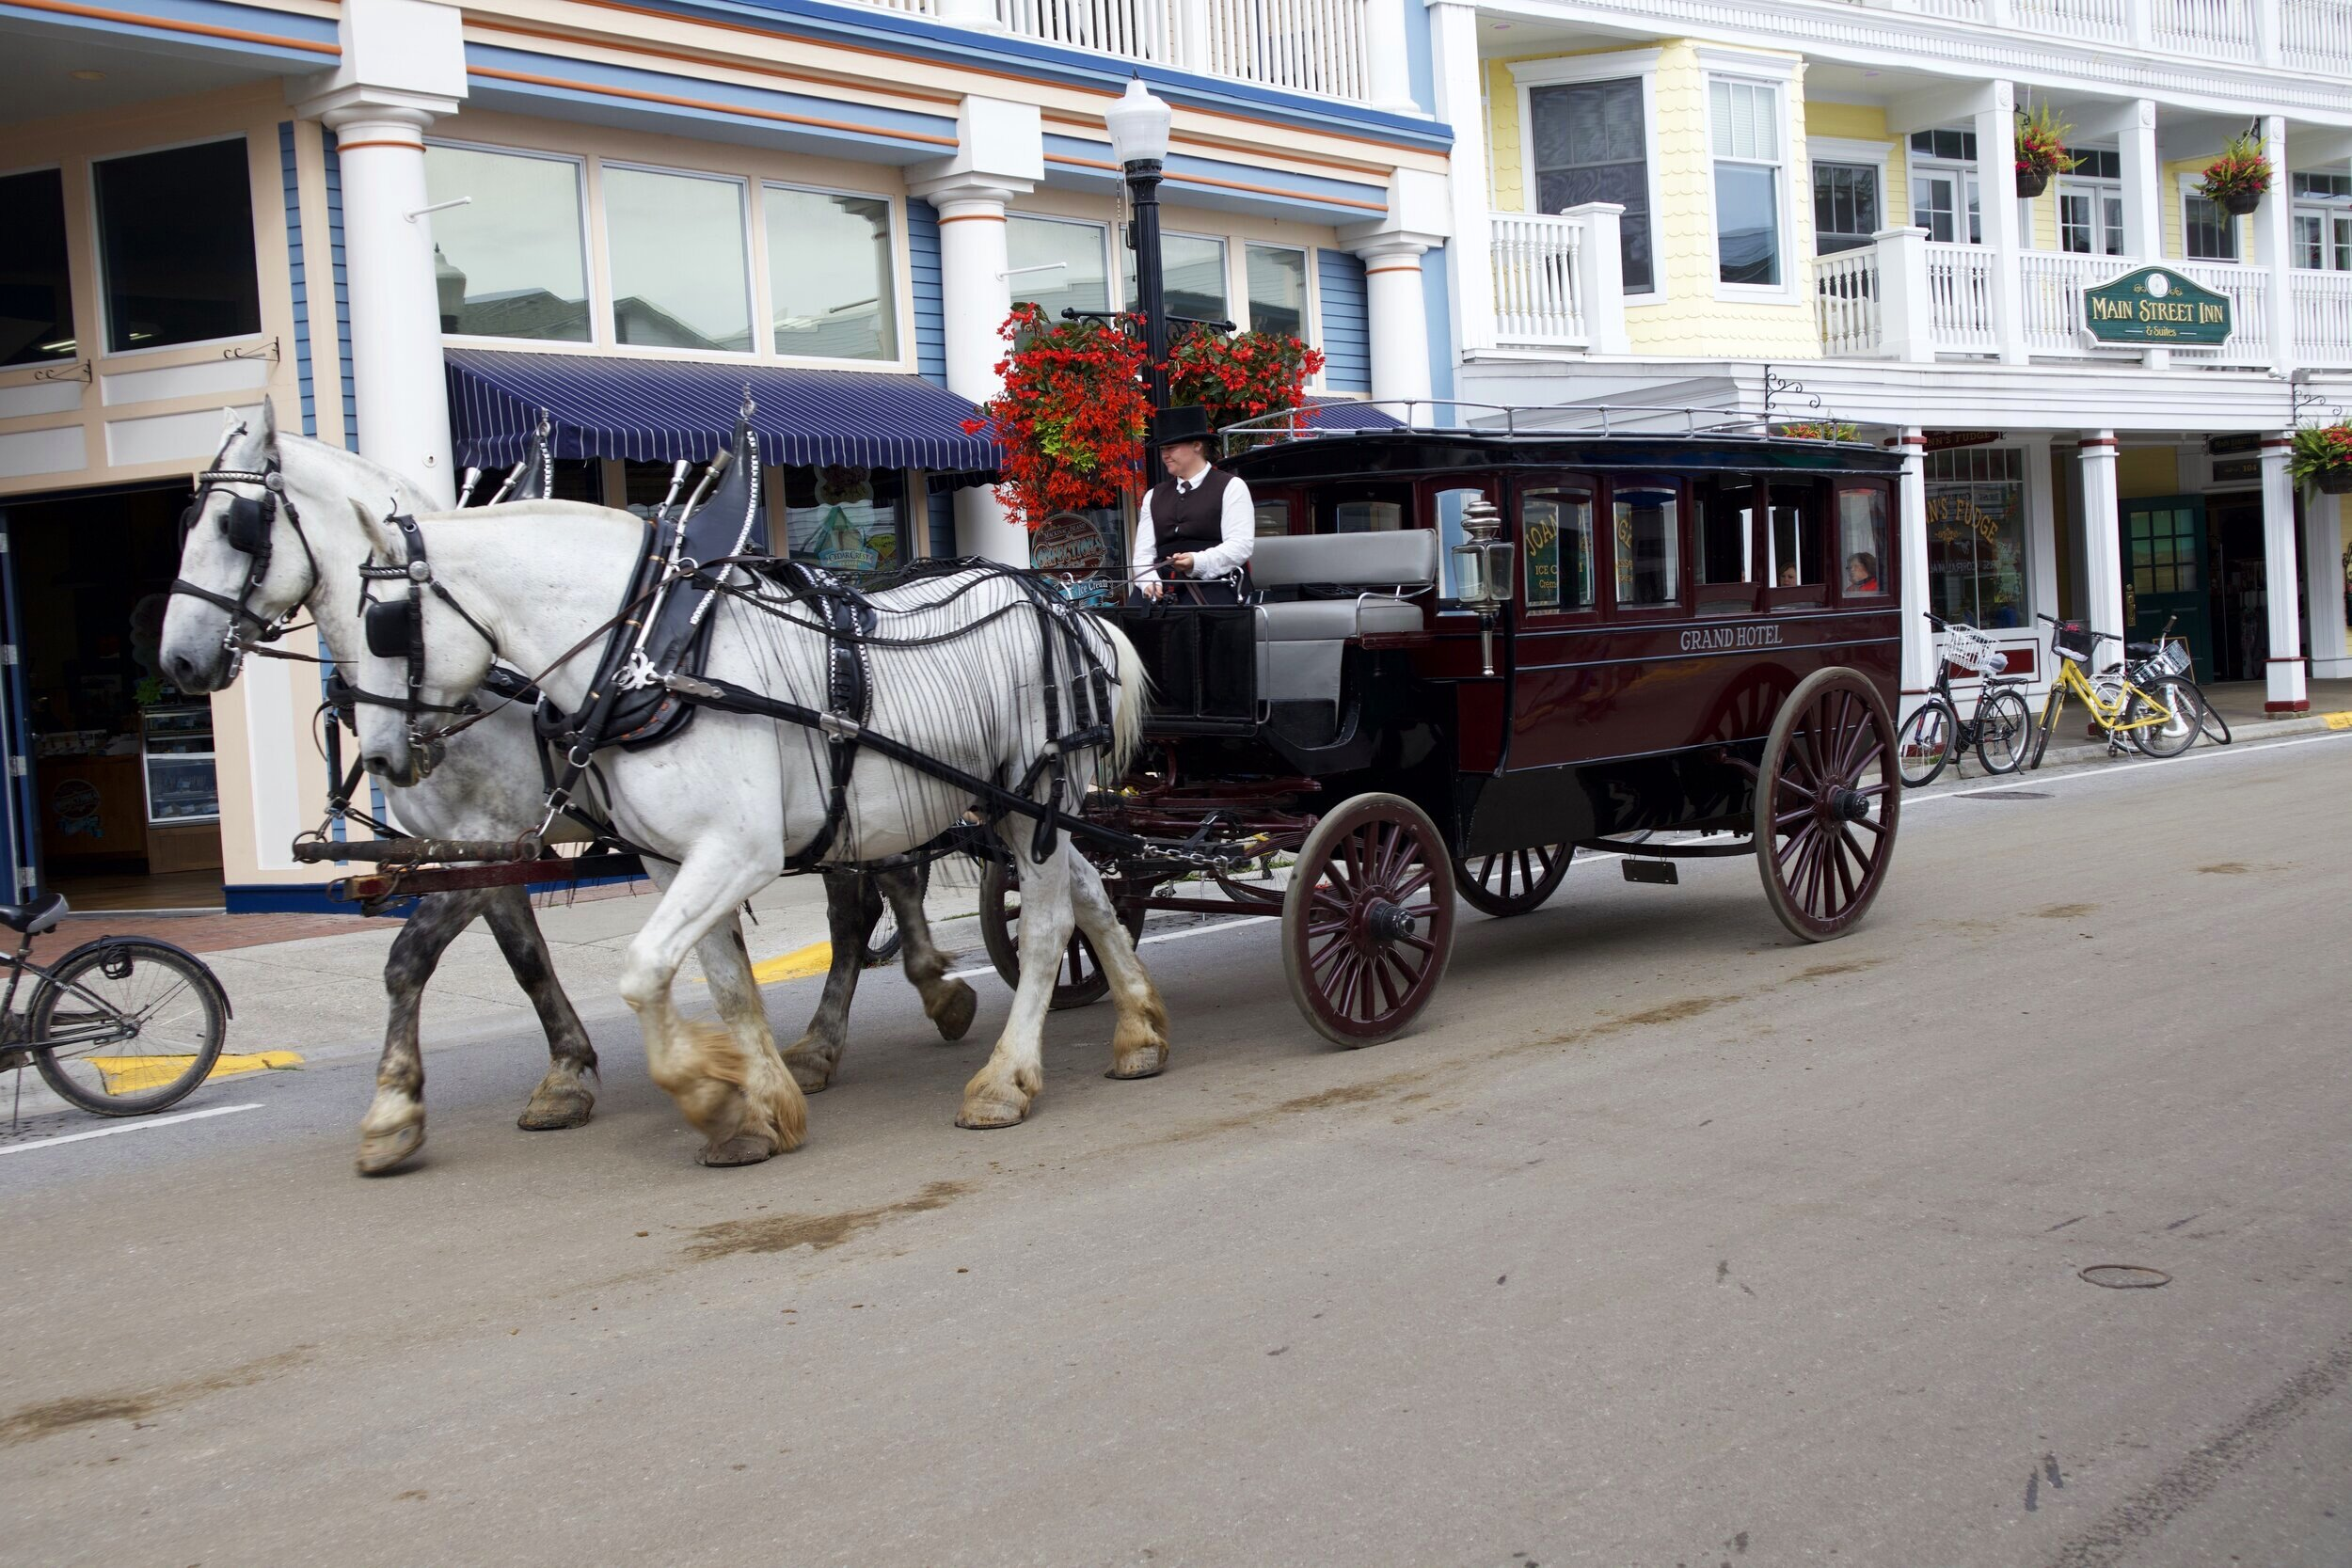 There are more than 500 horses on Mackinac Island.